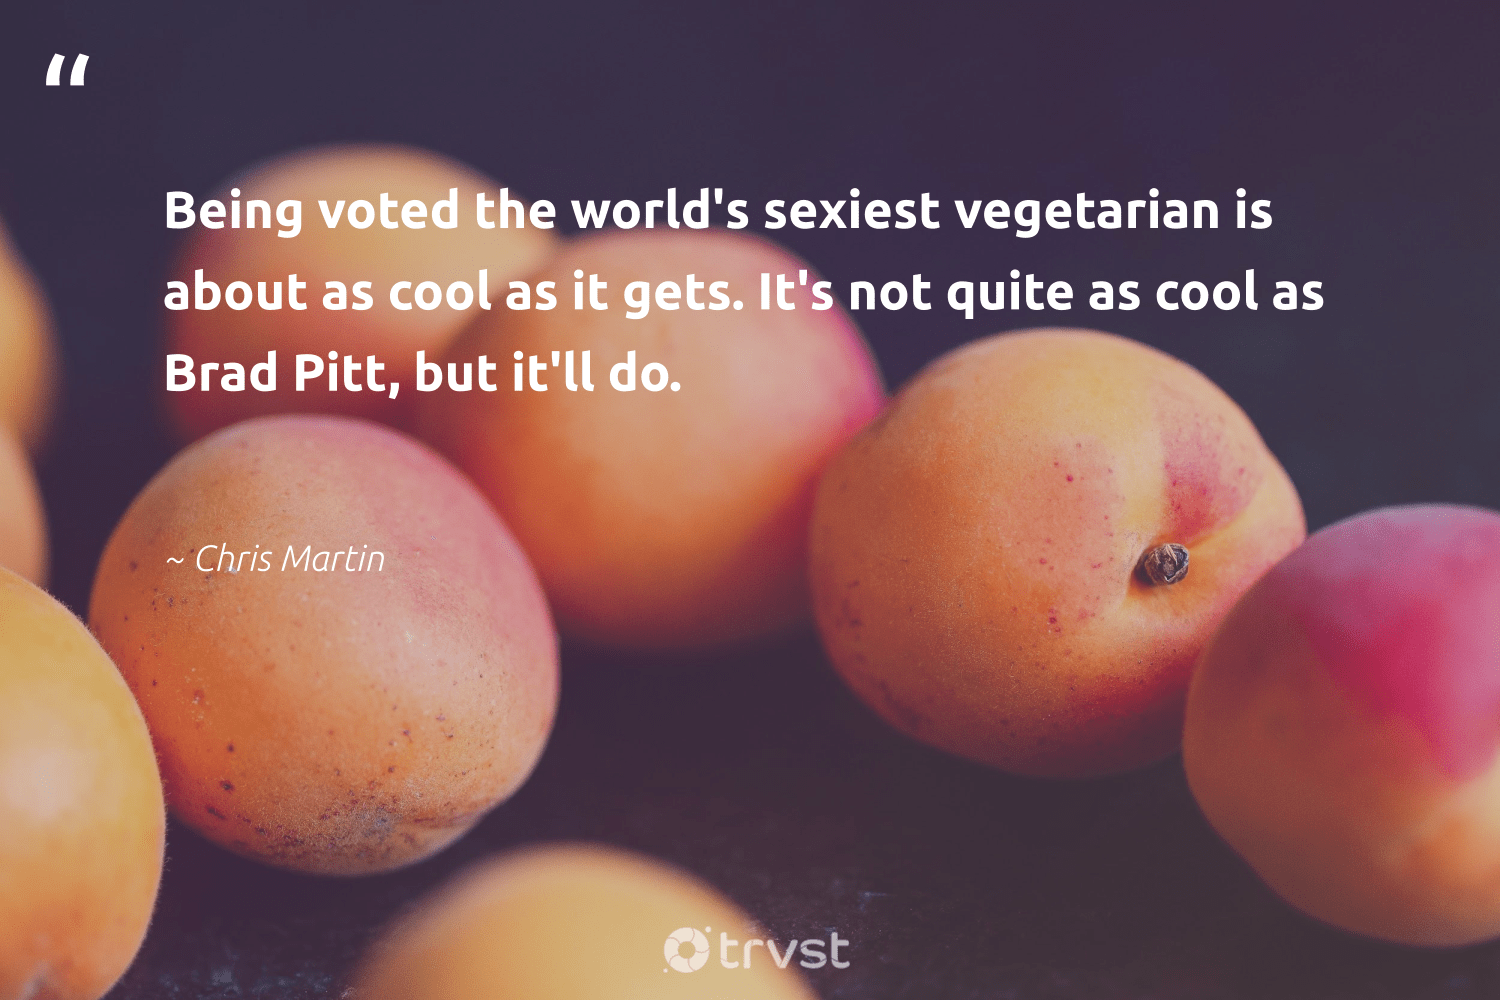 """""""Being voted the world's sexiest vegetarian is about as cool as it gets. It's not quite as cool as Brad Pitt, but it'll do.""""  - Chris Martin #trvst #quotes #vegan #vegetarian #veggie #gogreen #sustainable #ecoconscious #veganfoodshare #fashion #bethechange #dosomething"""